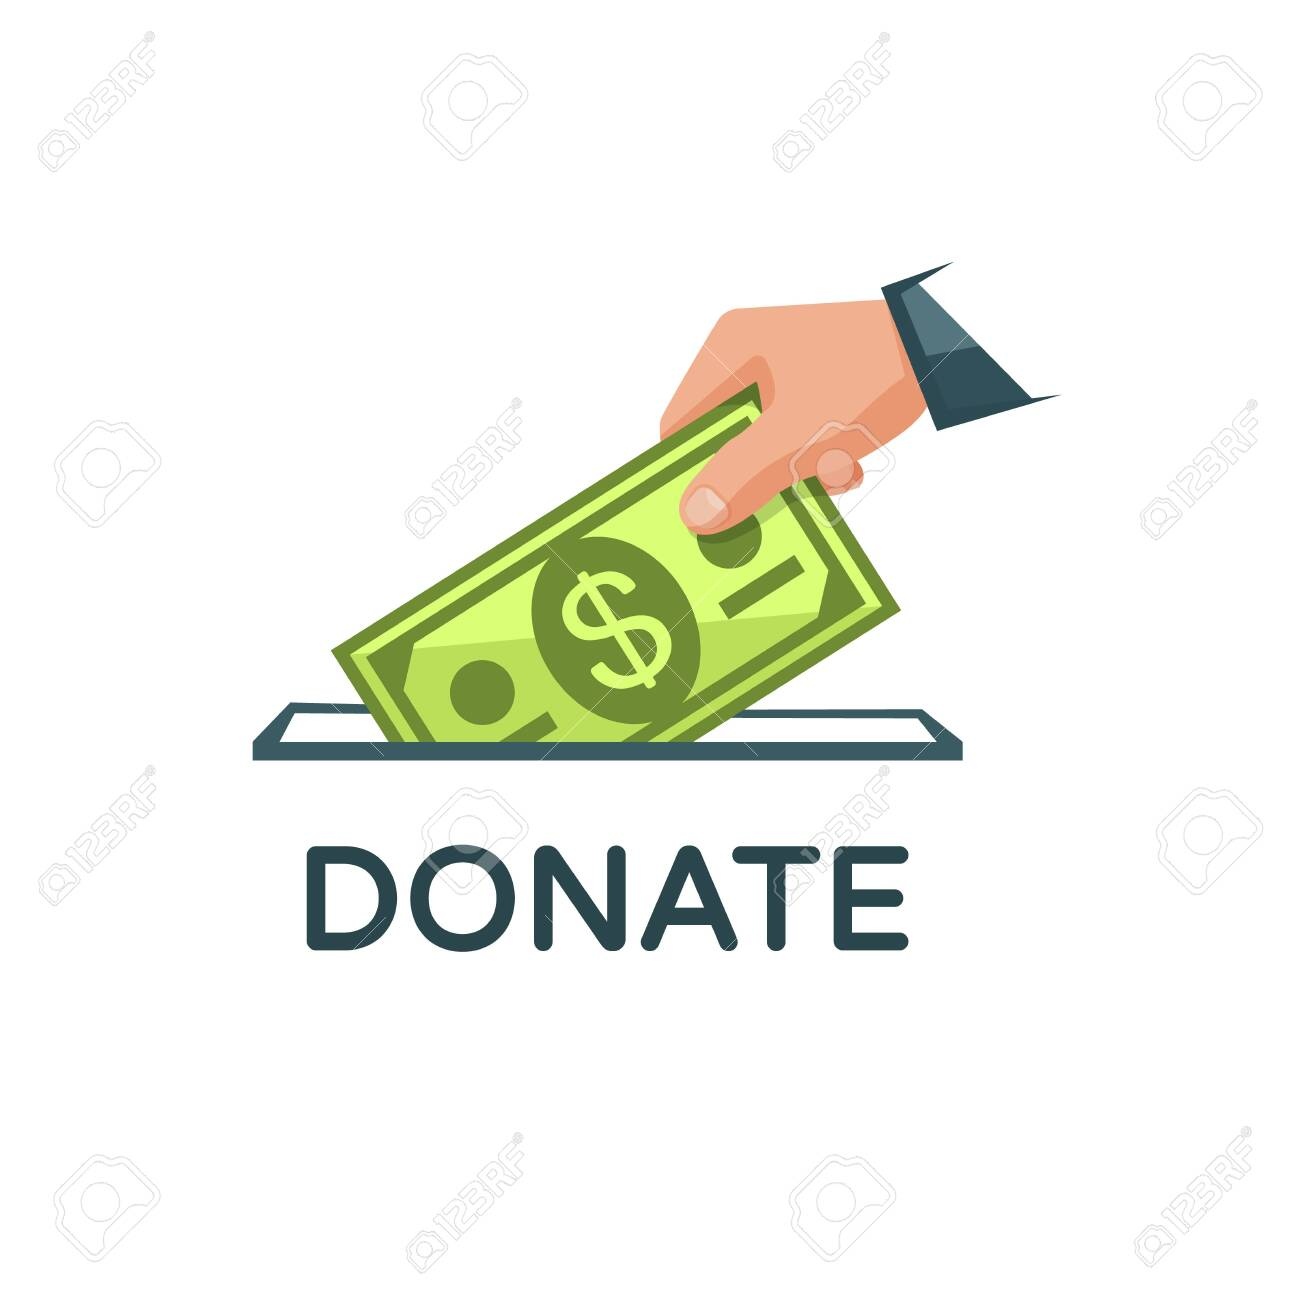 Donate Money Vector Illustration. Charity, Donation Concept... Royalty Free  Cliparts, Vectors, And Stock Illustration. Image 124103044.